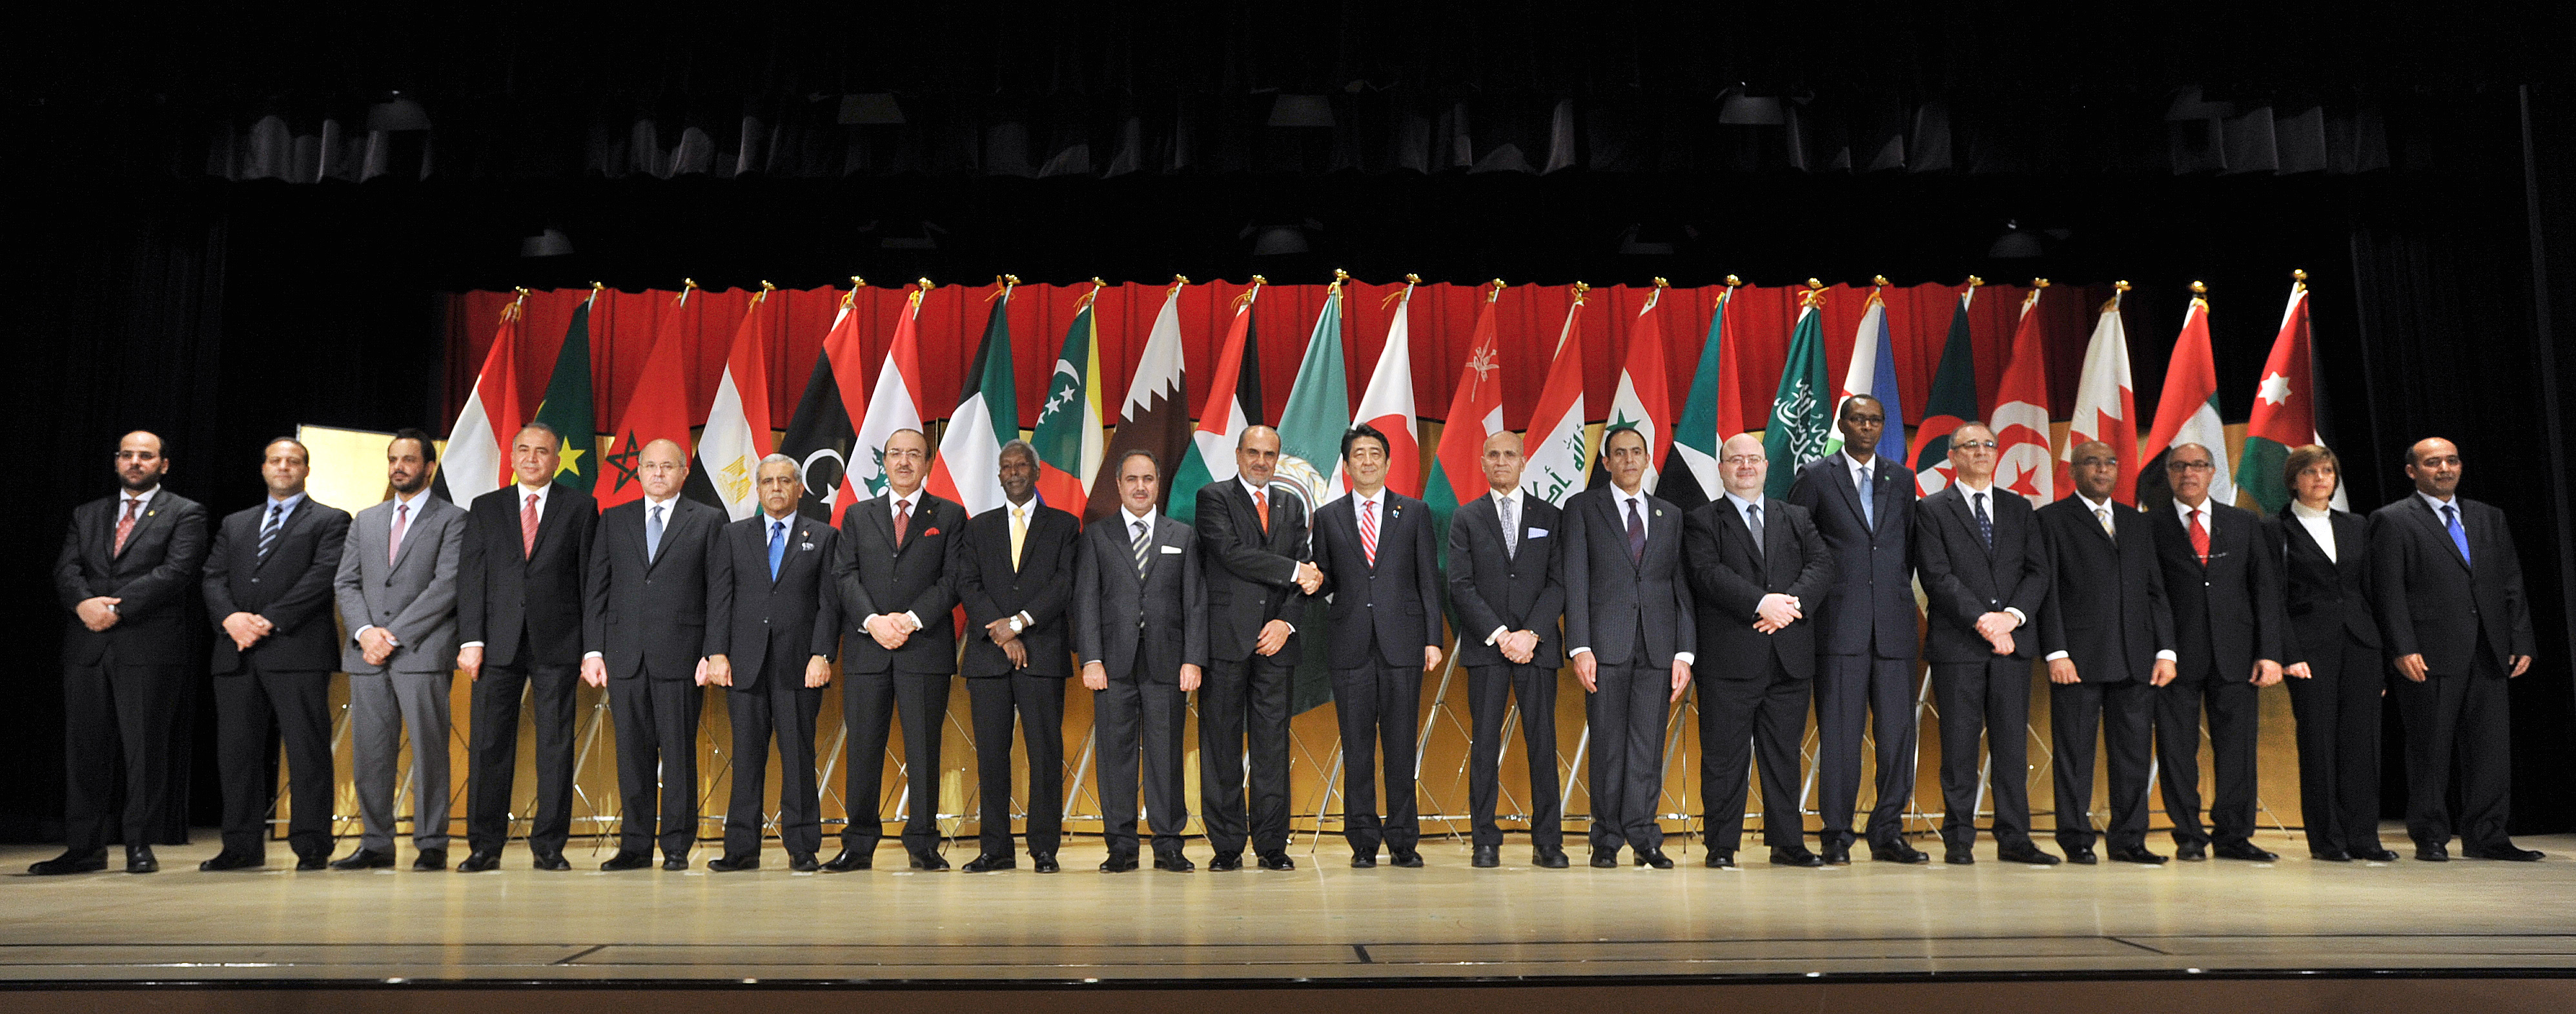 Members of the Council of Arab Ambassadors and Heads of Missions in Japan stand on stage as Prime Minister Shinzo Abe shakes hands with Dean of the Arab Diplomatic Corps Waleed Siam at the Imperial Hotel, Tokyo on April 4. | YOSHIAKI MIURA